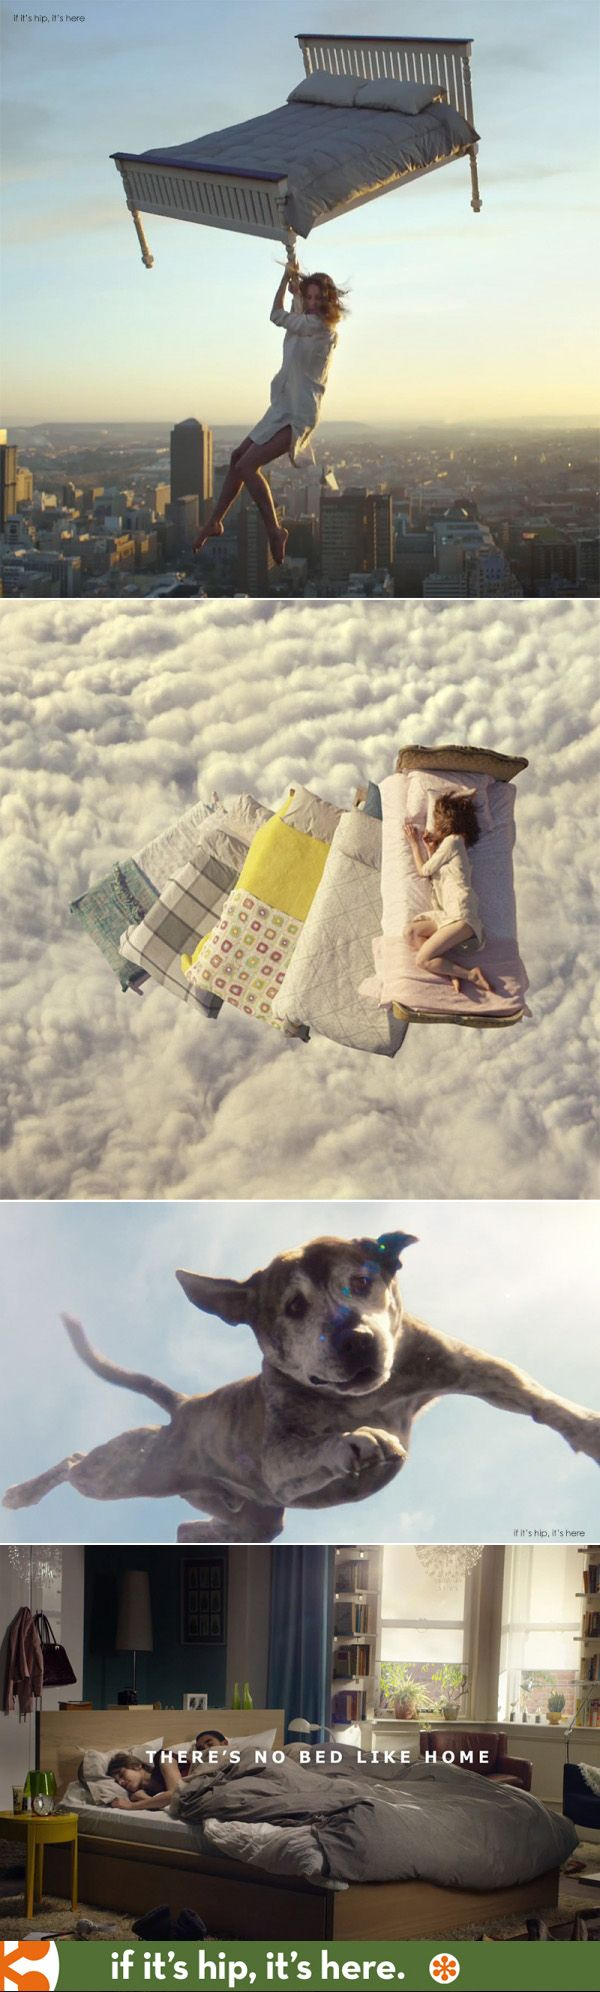 A very cool new spot for IKEA UK. See it and how it was done at http://www.ifitshipitshere.com/ikea-beds-features-airborne-mattresses-flying-dogs-tempest/